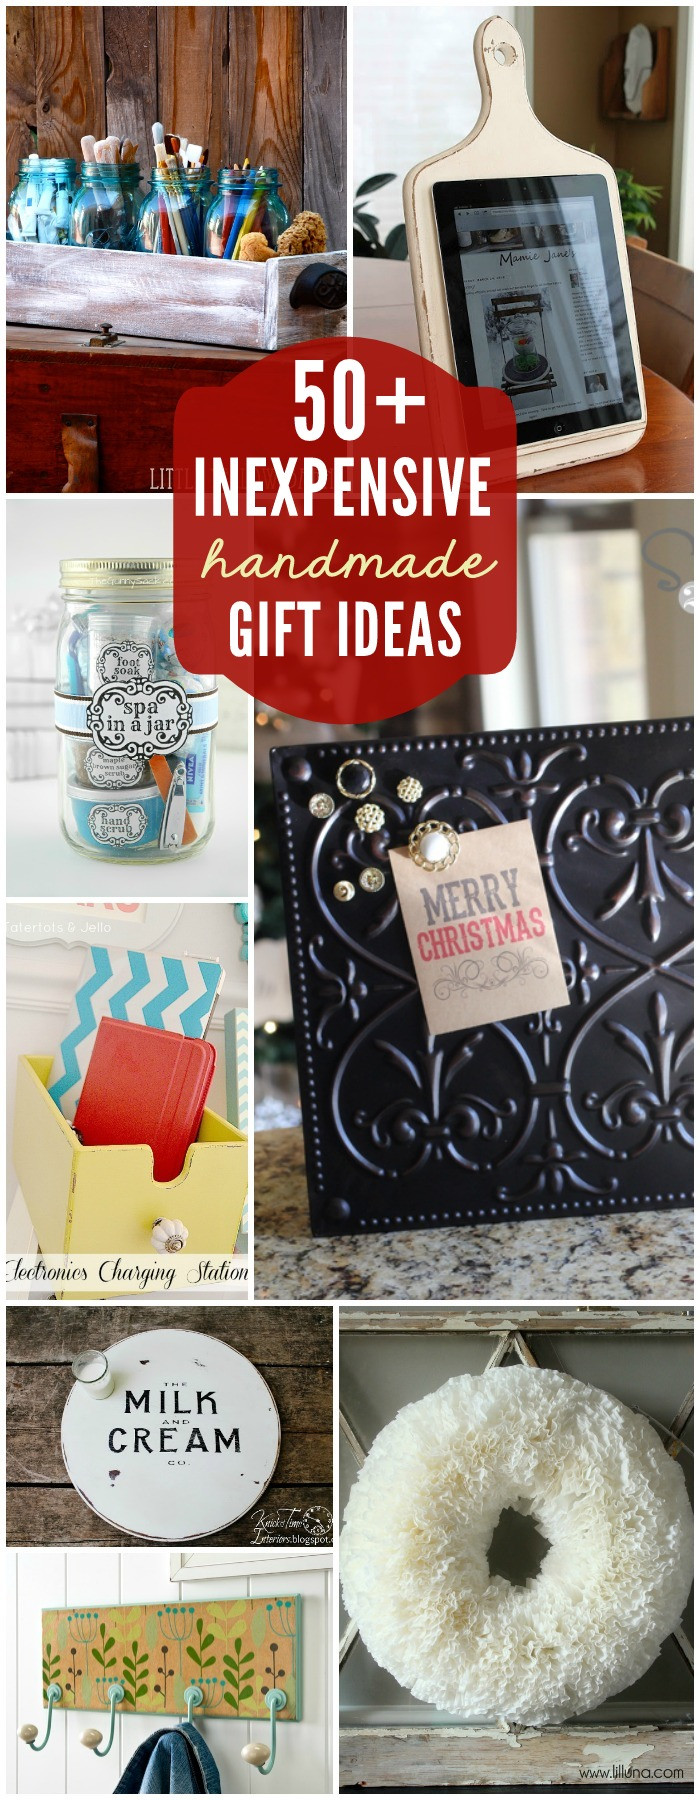 Best ideas about DIY Christmas Gift Baskets Ideas . Save or Pin Inexpensive Gift Ideas Now.